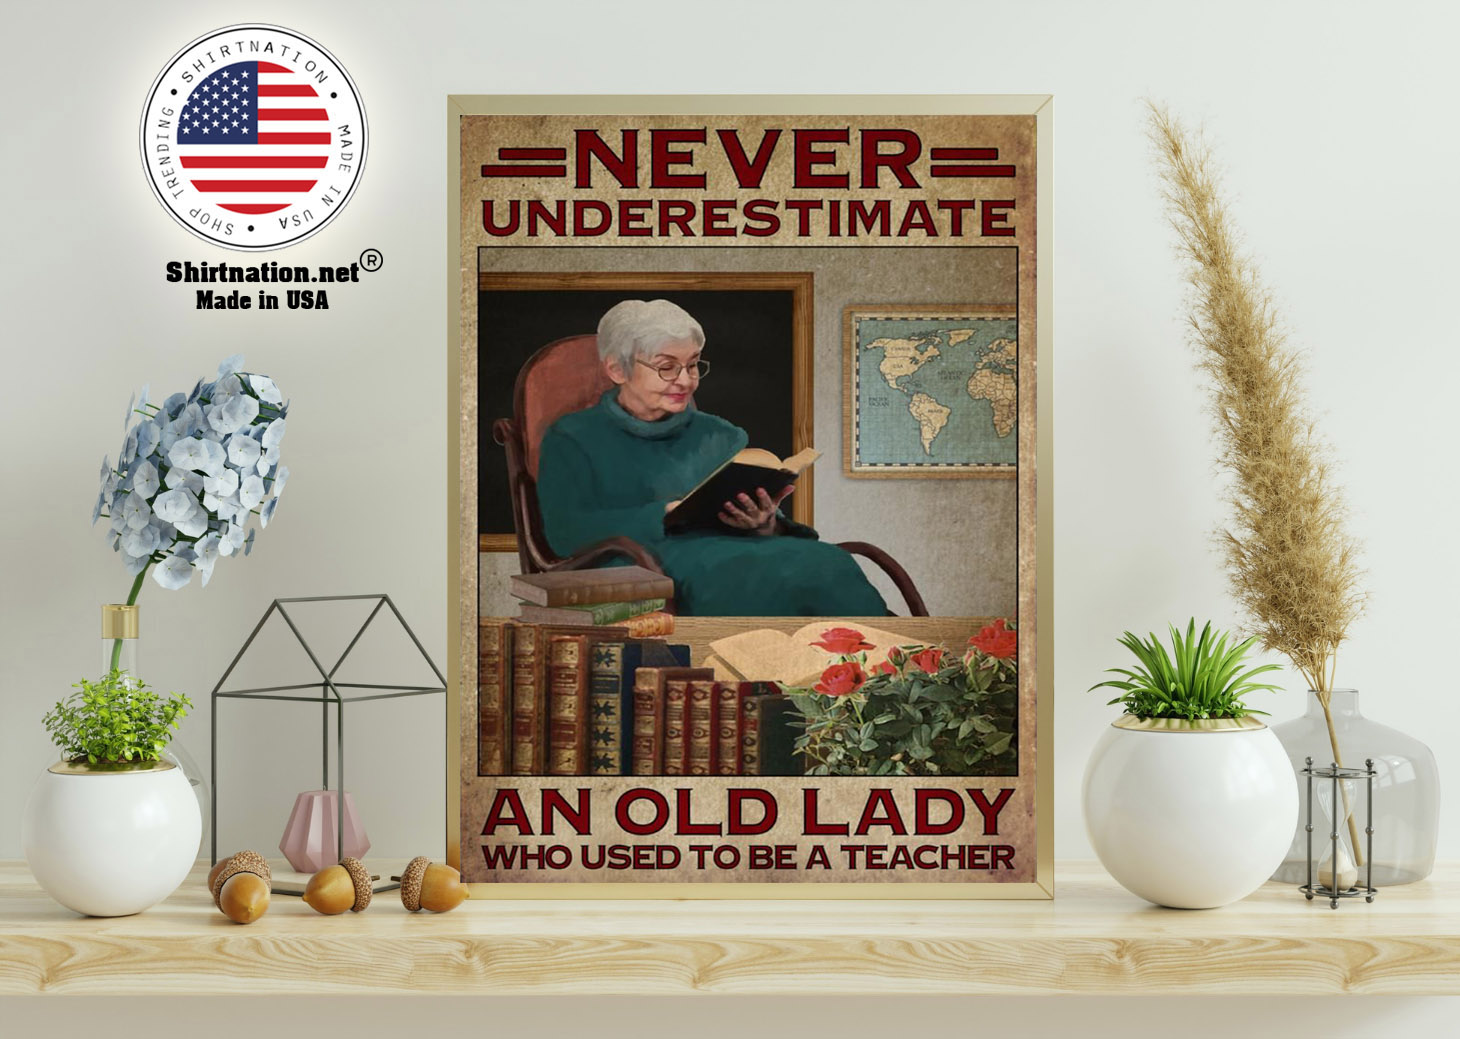 Never underestimate an old lady who used to be a teacher poster 11